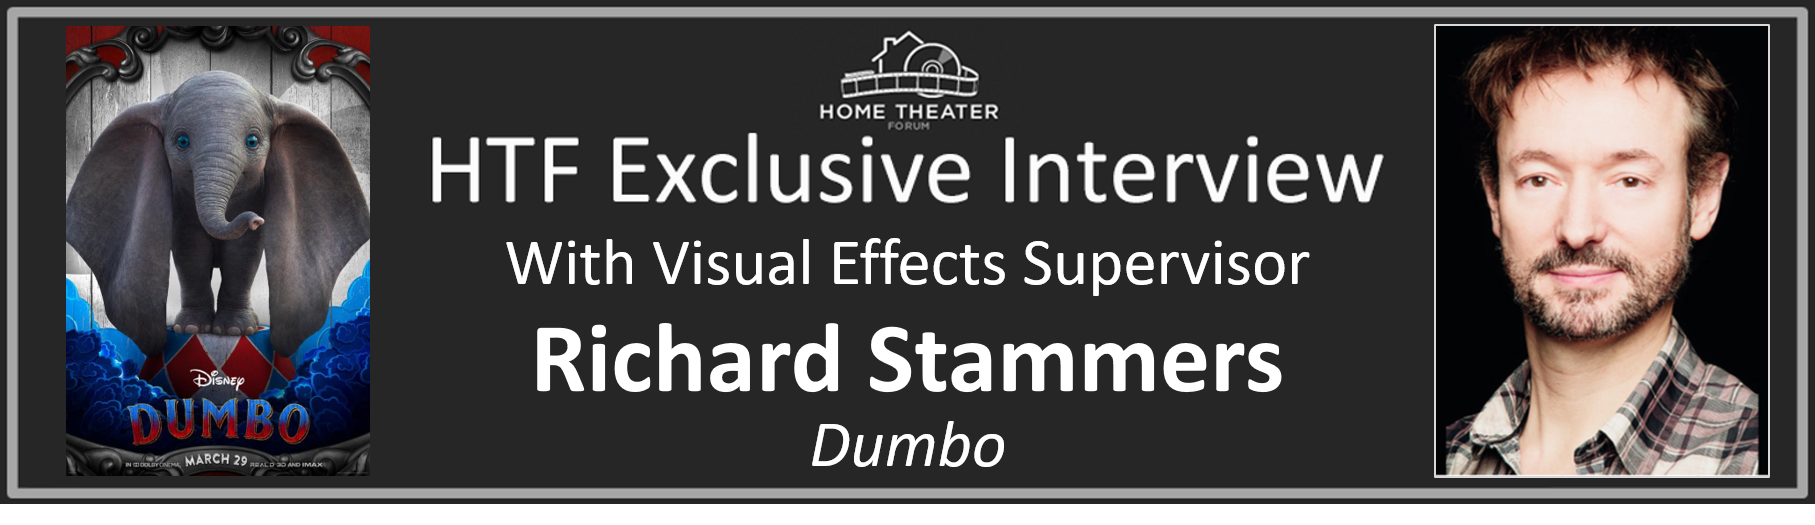 HTF_Interview_Richard_Stammers.png